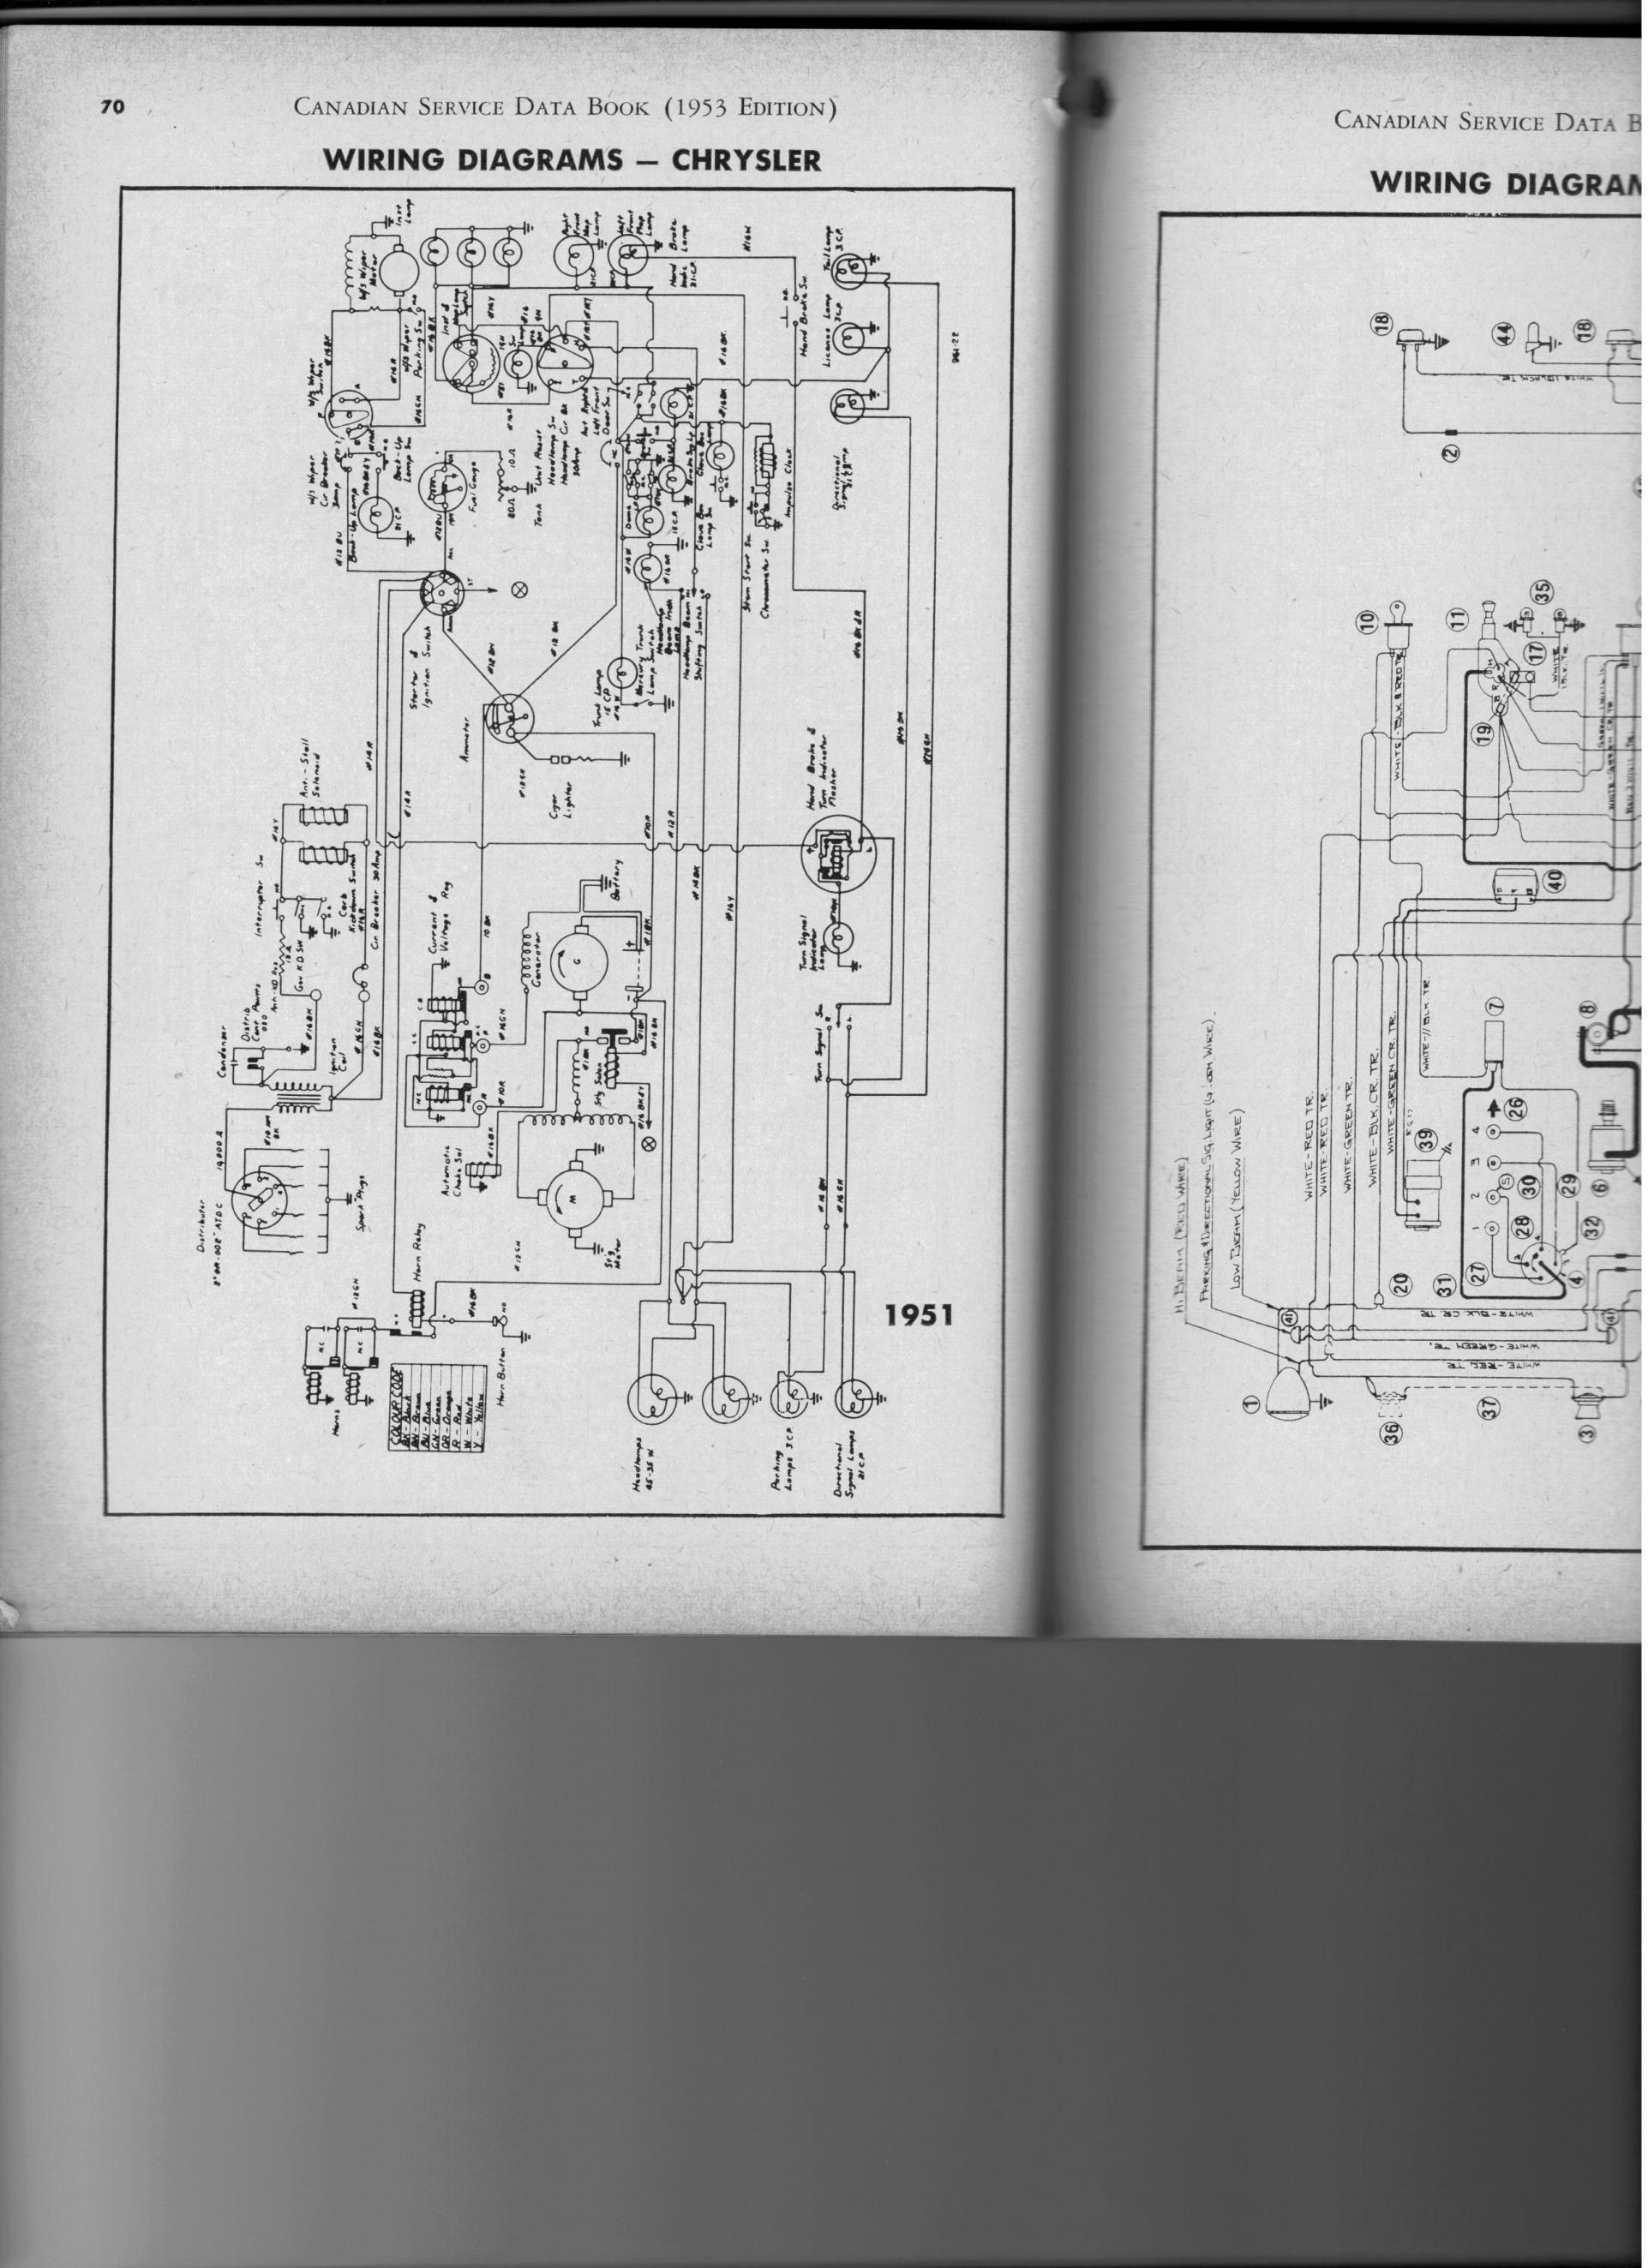 1959 chrysler wiring diagram schematics wiring diagrams u2022 rh seniorlivinguniversity co Chrysler Wiring Diagram Symbols Chrysler Car Stereo Wiring Diagram